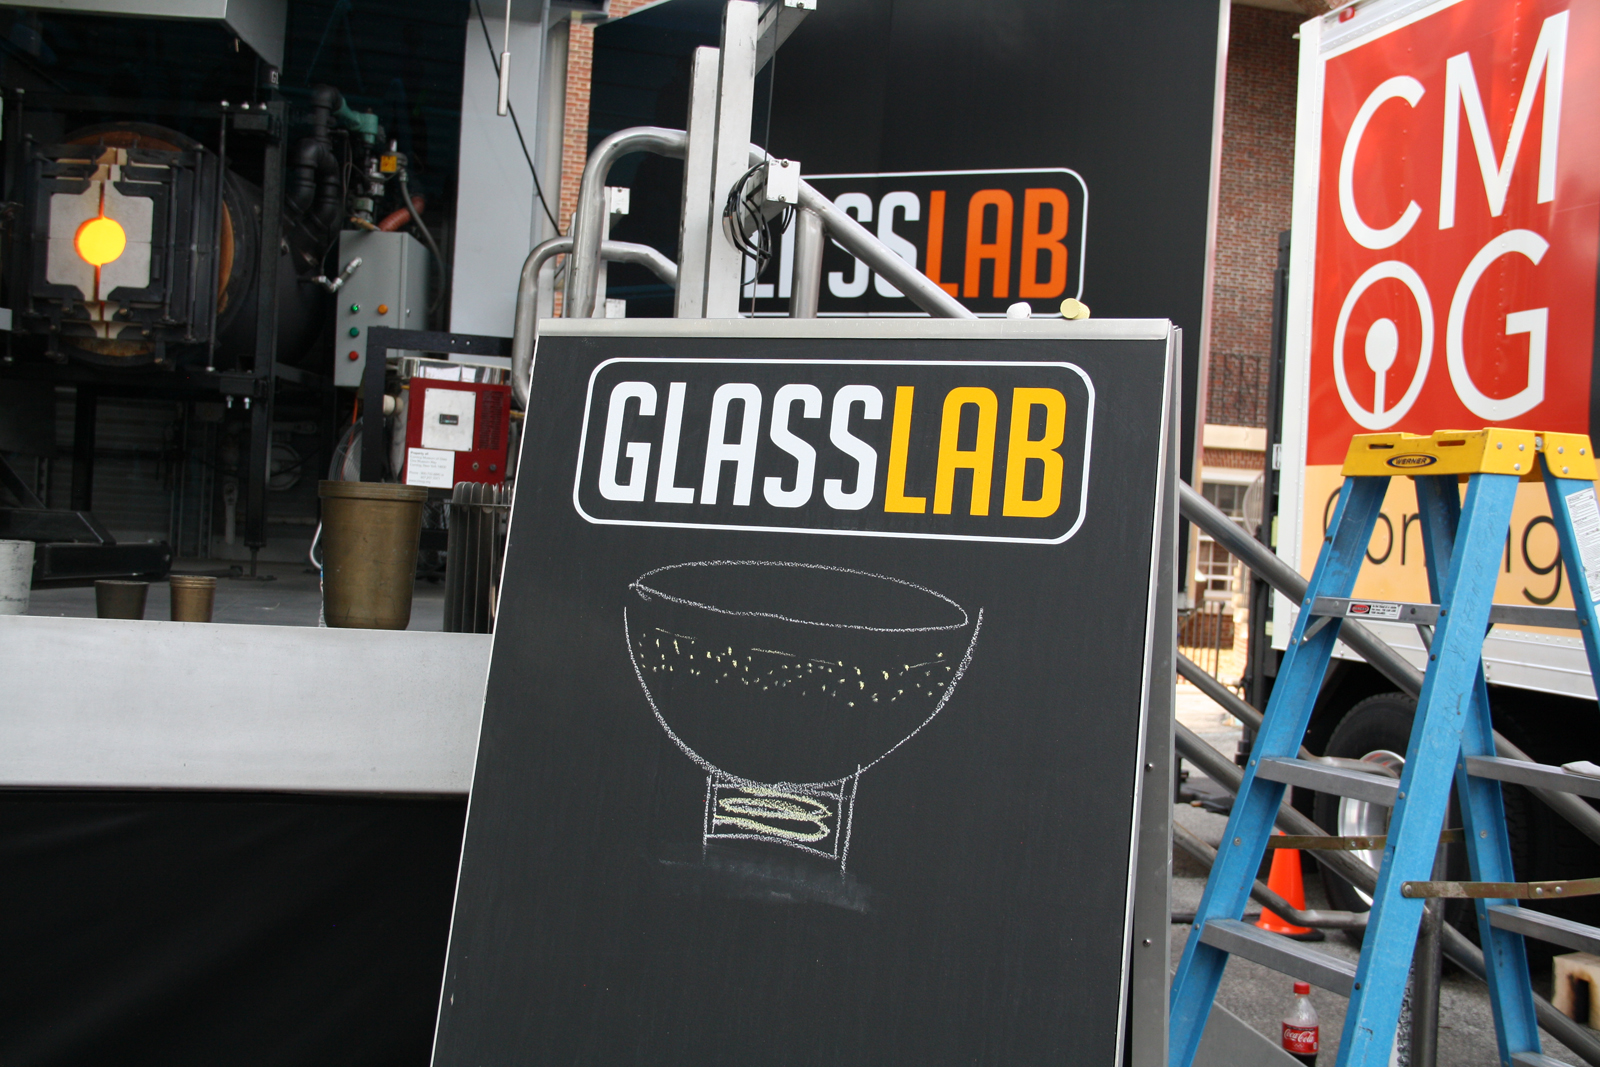 Designer Judy Smilow at GlassLab at Governors Island, July 15, 2012